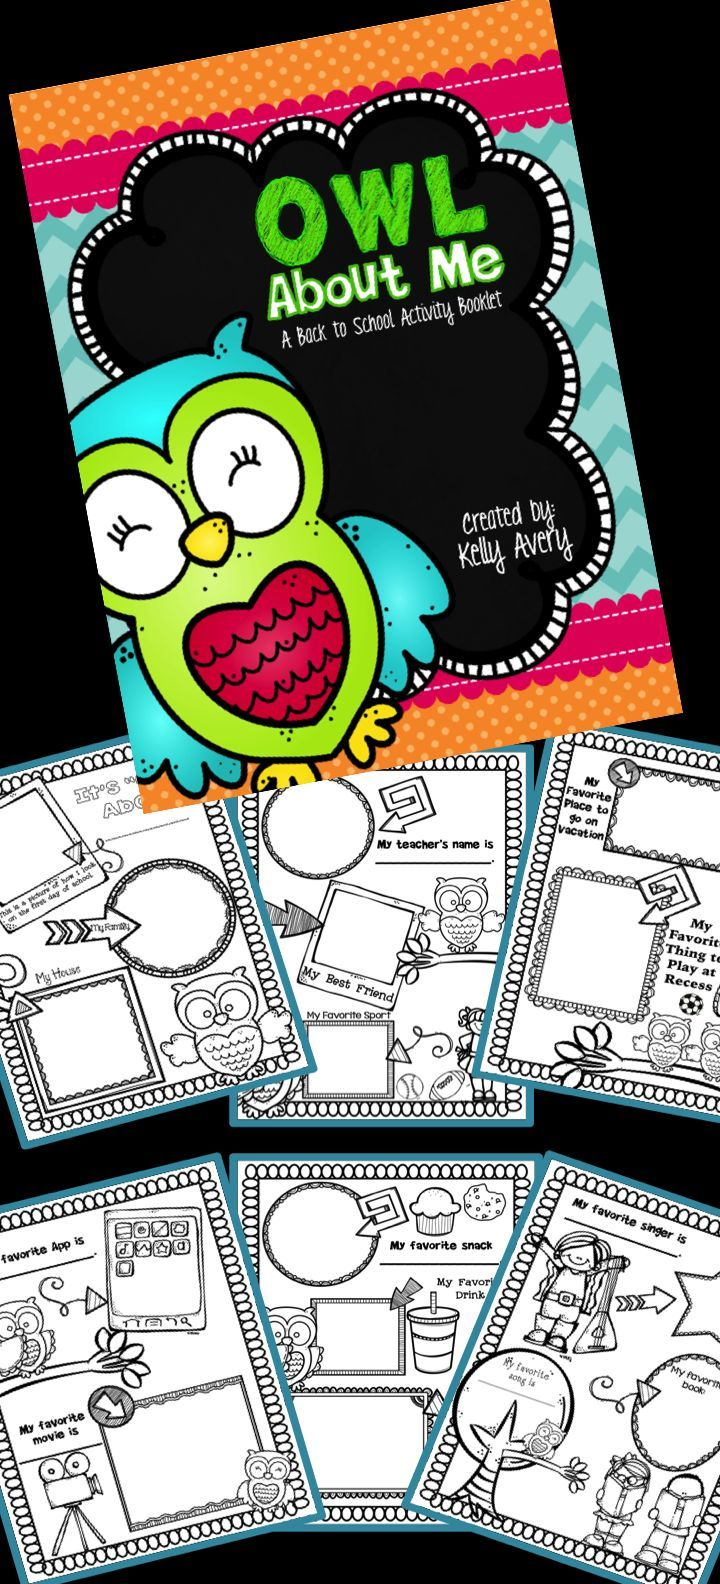 If you are a teacher looking for some All About Me activities, this no prep, owl themed booklet is perfect for a back to school activity, end of the year activity, or a literacy center activity anytime during the school year!  Click here to discover these engaging, printables for kids of all ages!  This All About Me booklet is guaranteed to keep your students engaged and excited while they complete the fun worksheets!